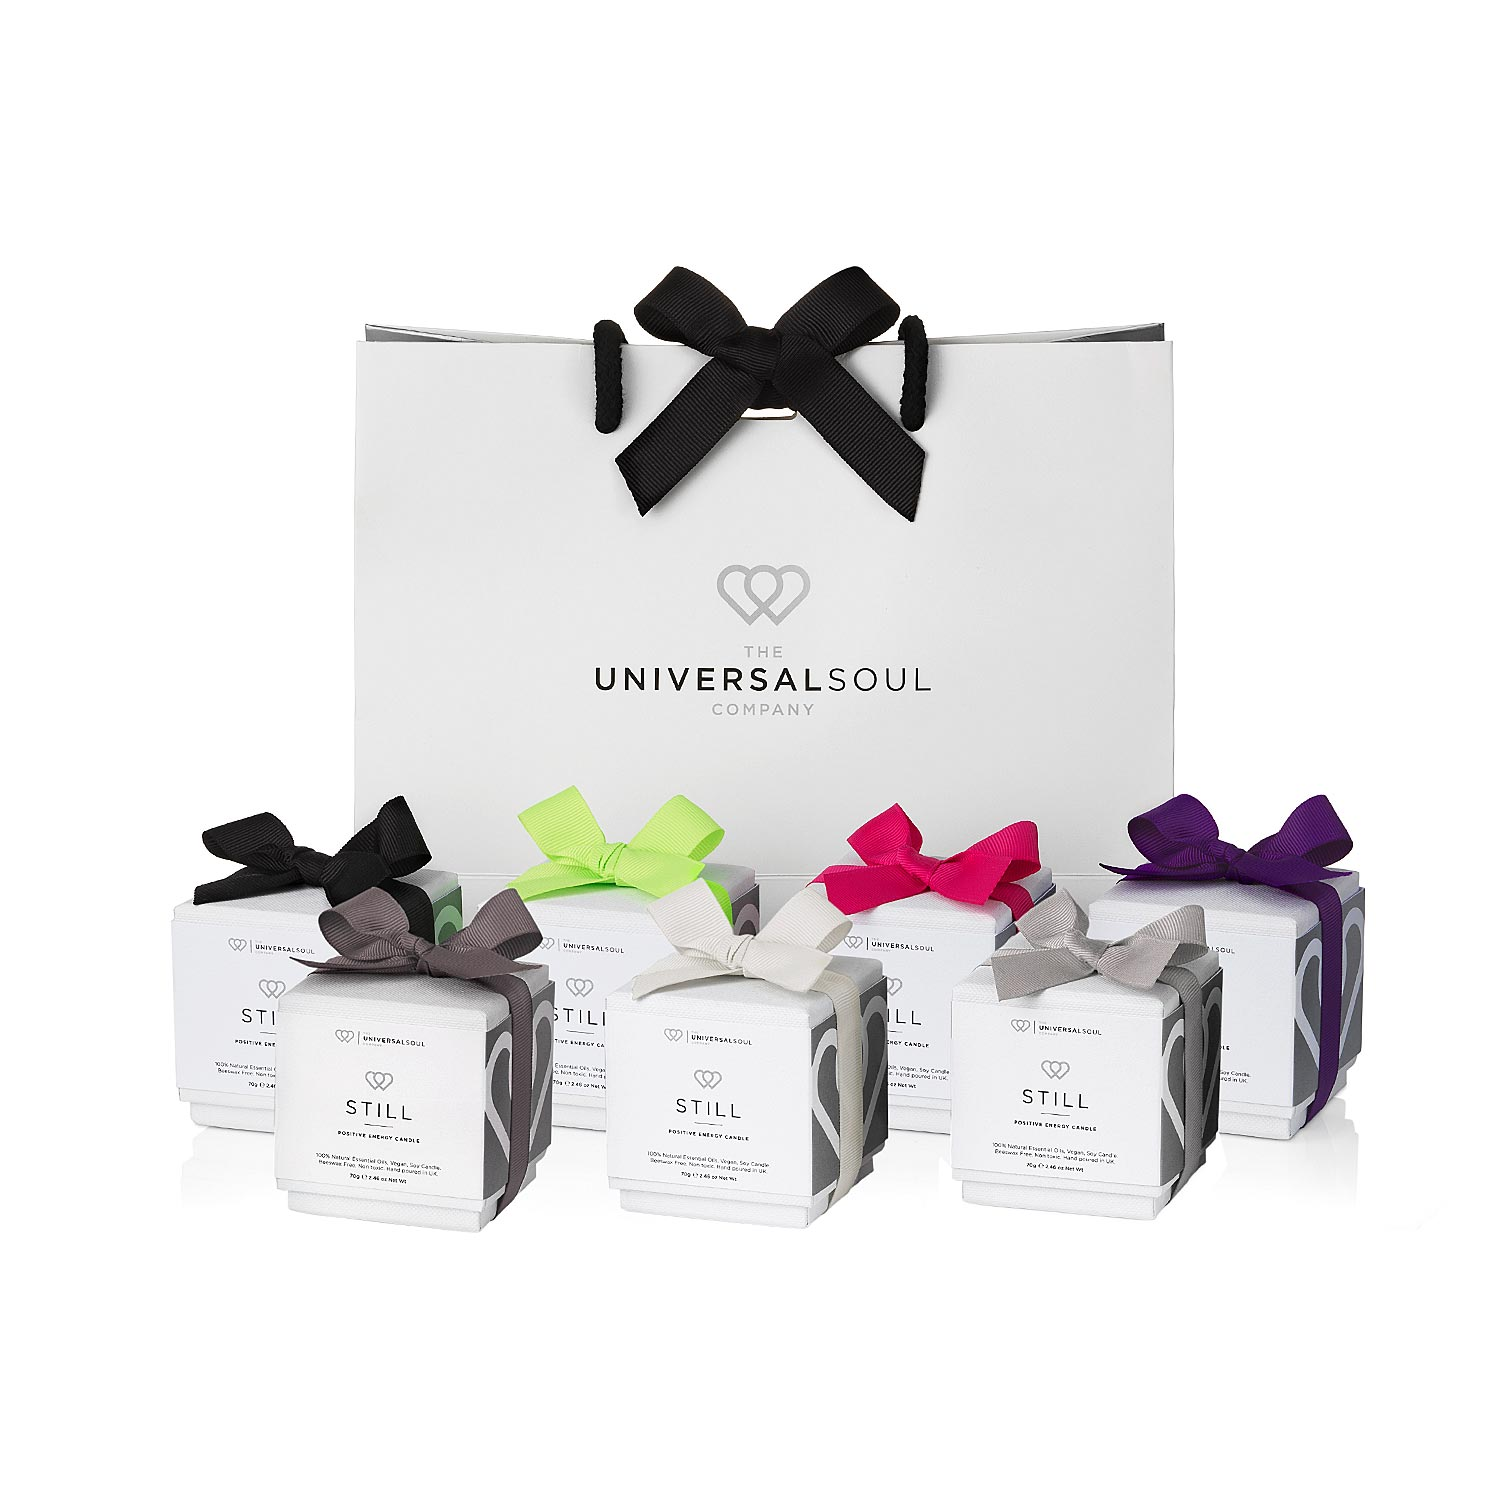 The Universal Soul Company - Gift Wrapping Service - Gift bag and candles with coloured ribbons